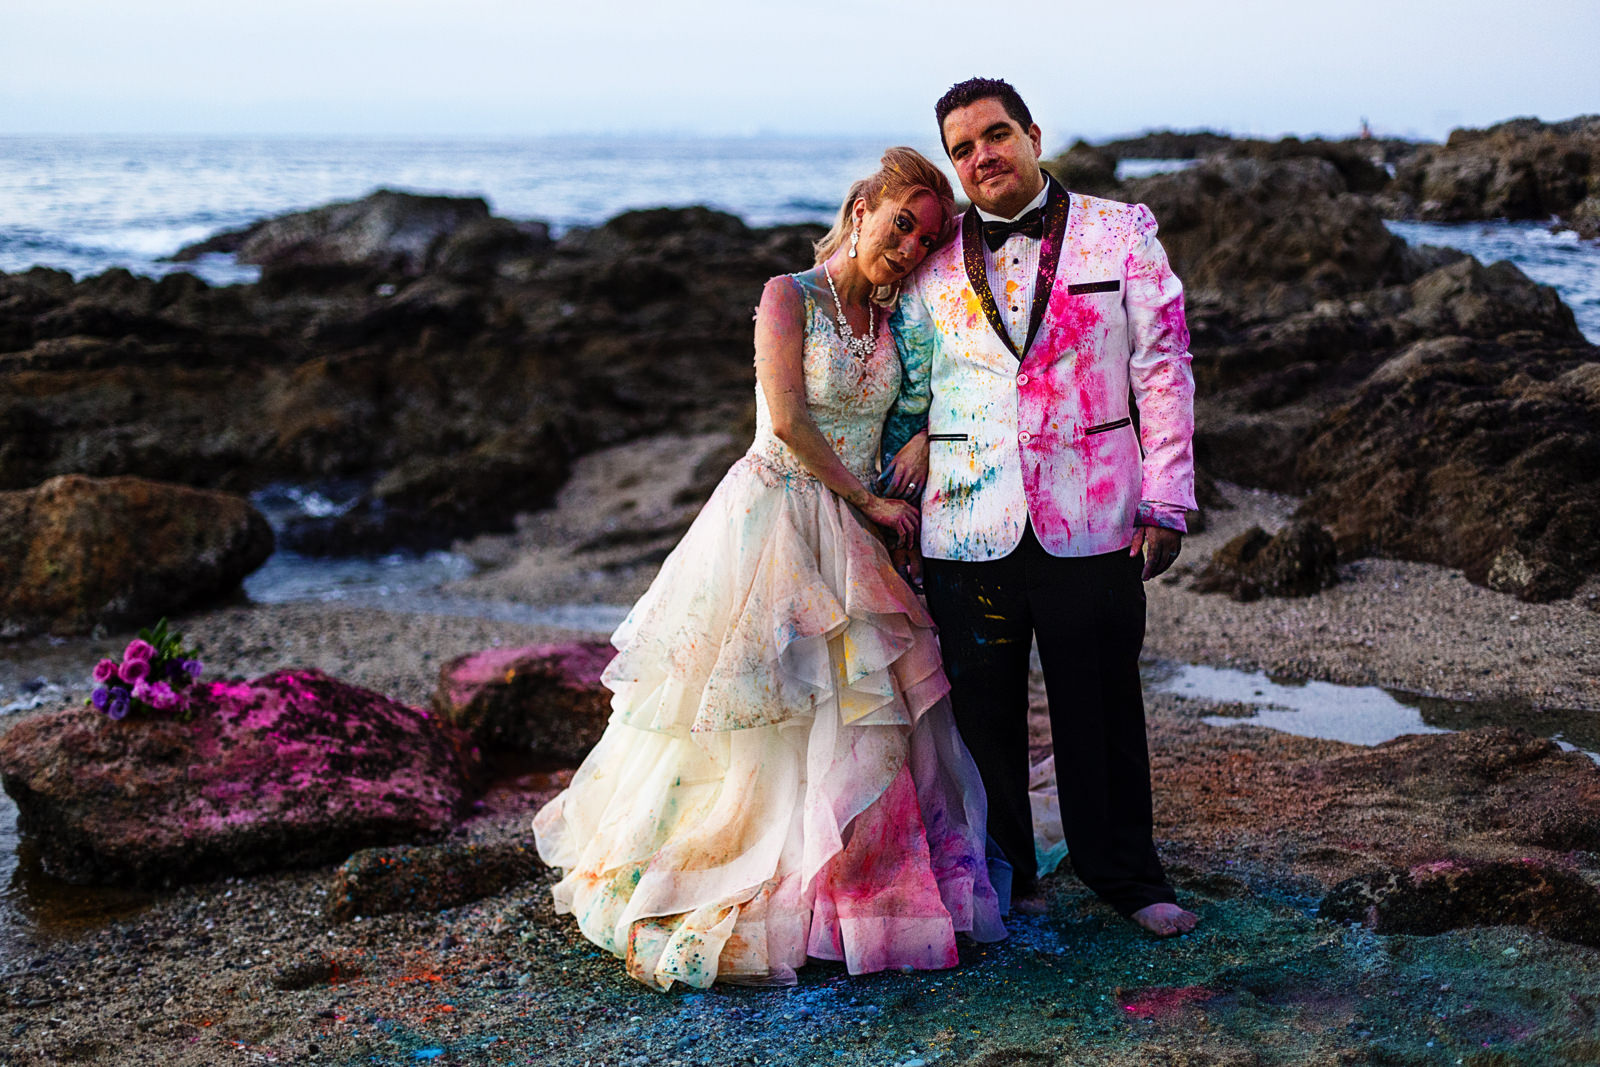 Groom and bride standing side by side near the pacific ocean and covered in colorful holi powder